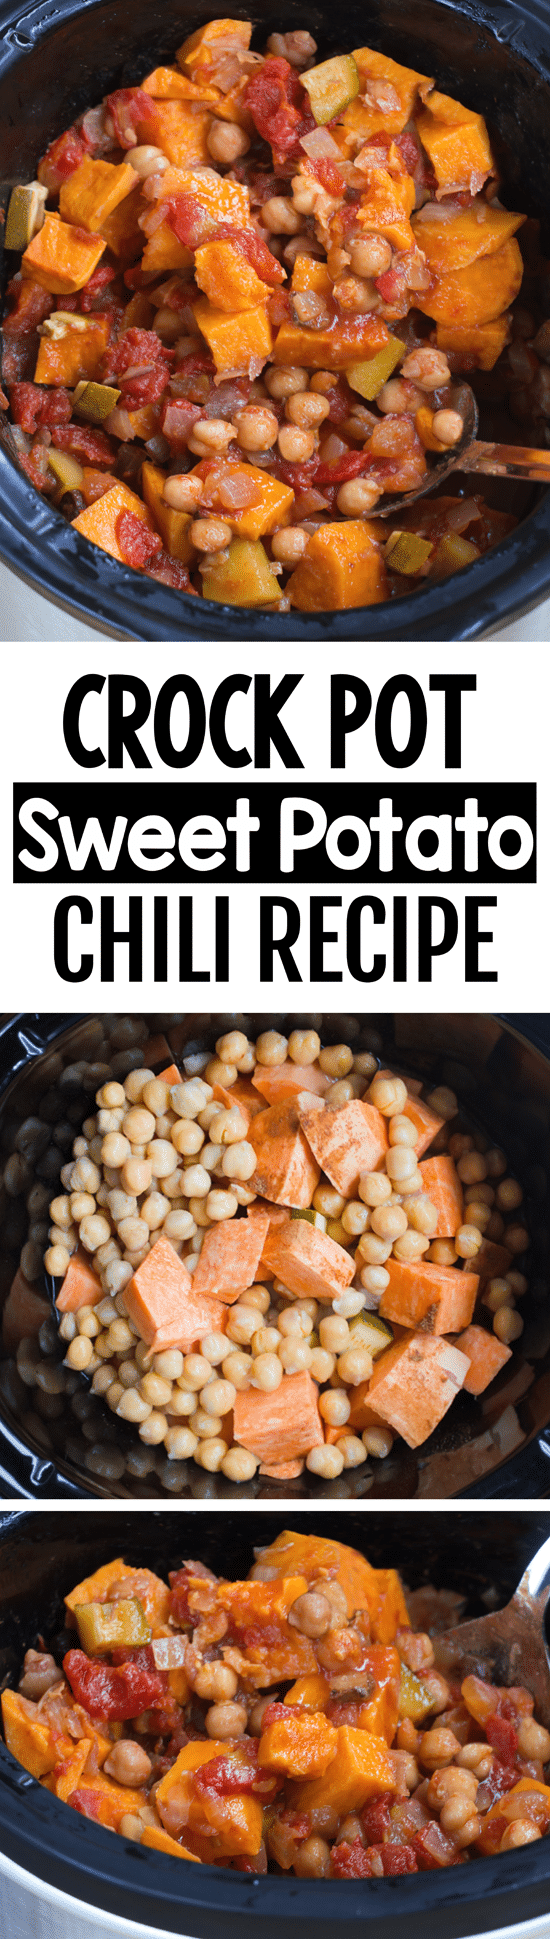 Super Healthy Crock Pot Sweet Potato Chili Recipe